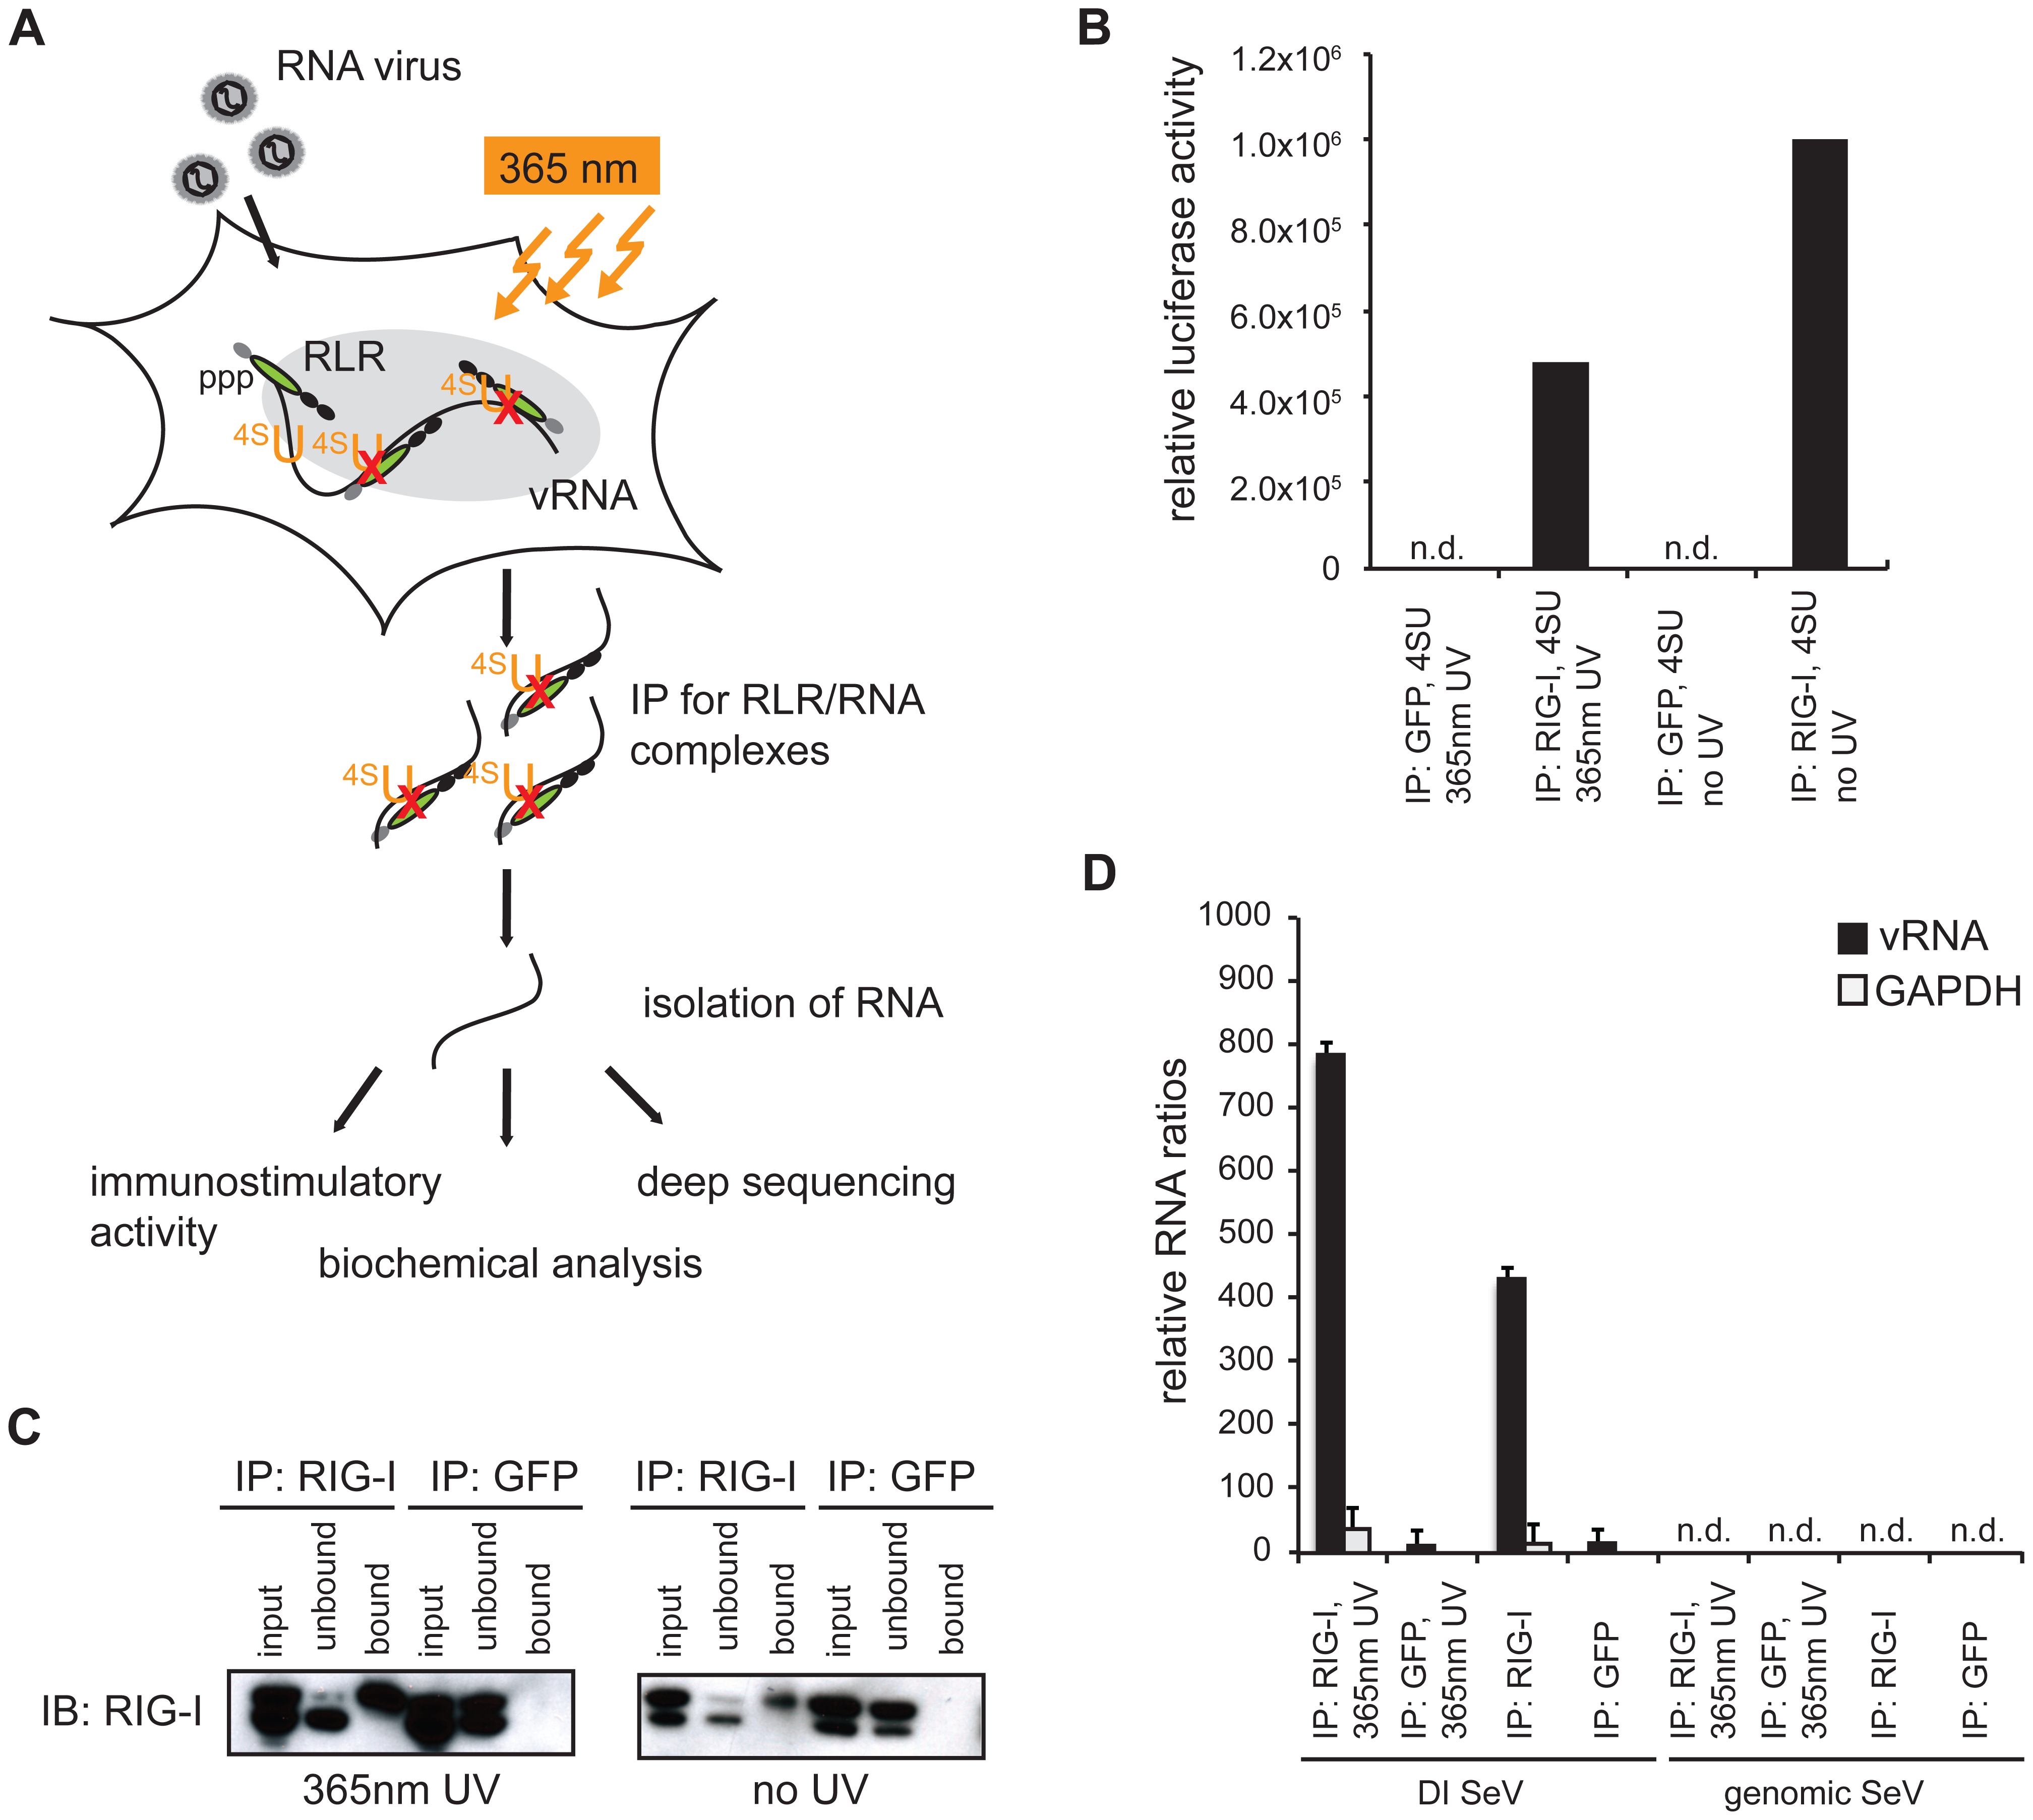 Validation of crosslinking and immunoprecipitation of RLR/RNA complexes from 24 h virus-infected cells.